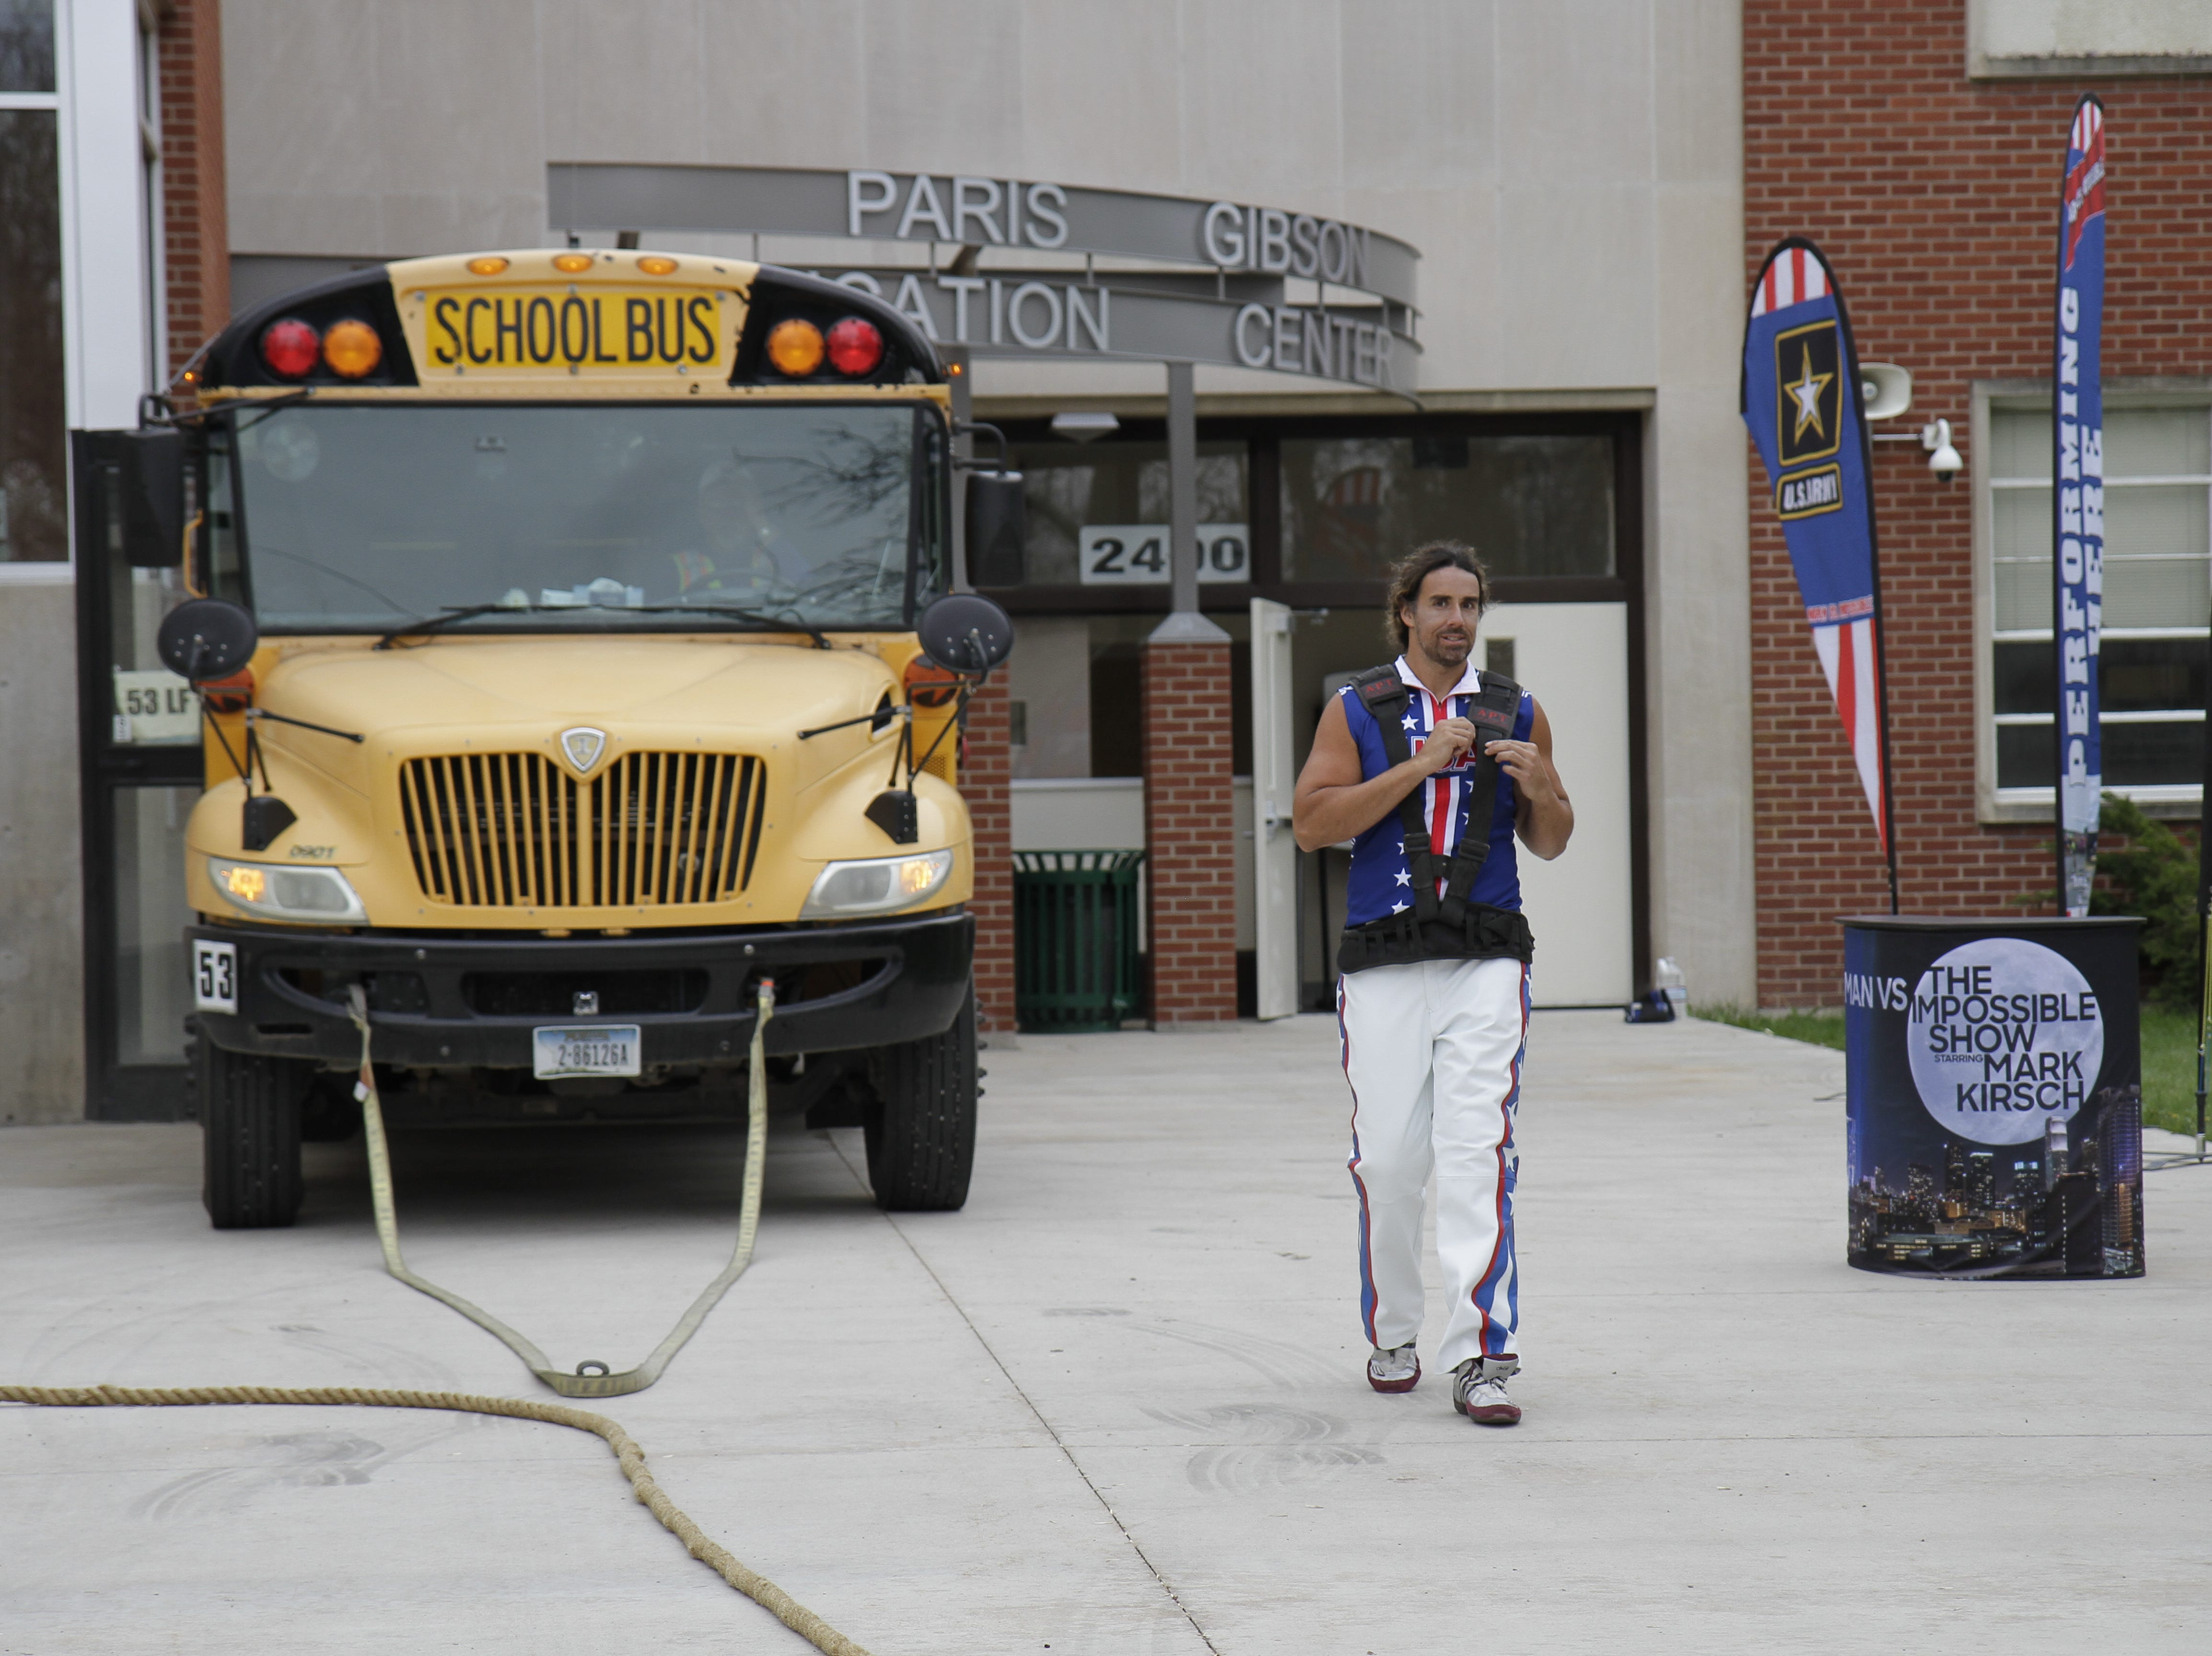 Mark Kirsch getting ready to give the green light for students to board the bus to their next destination.